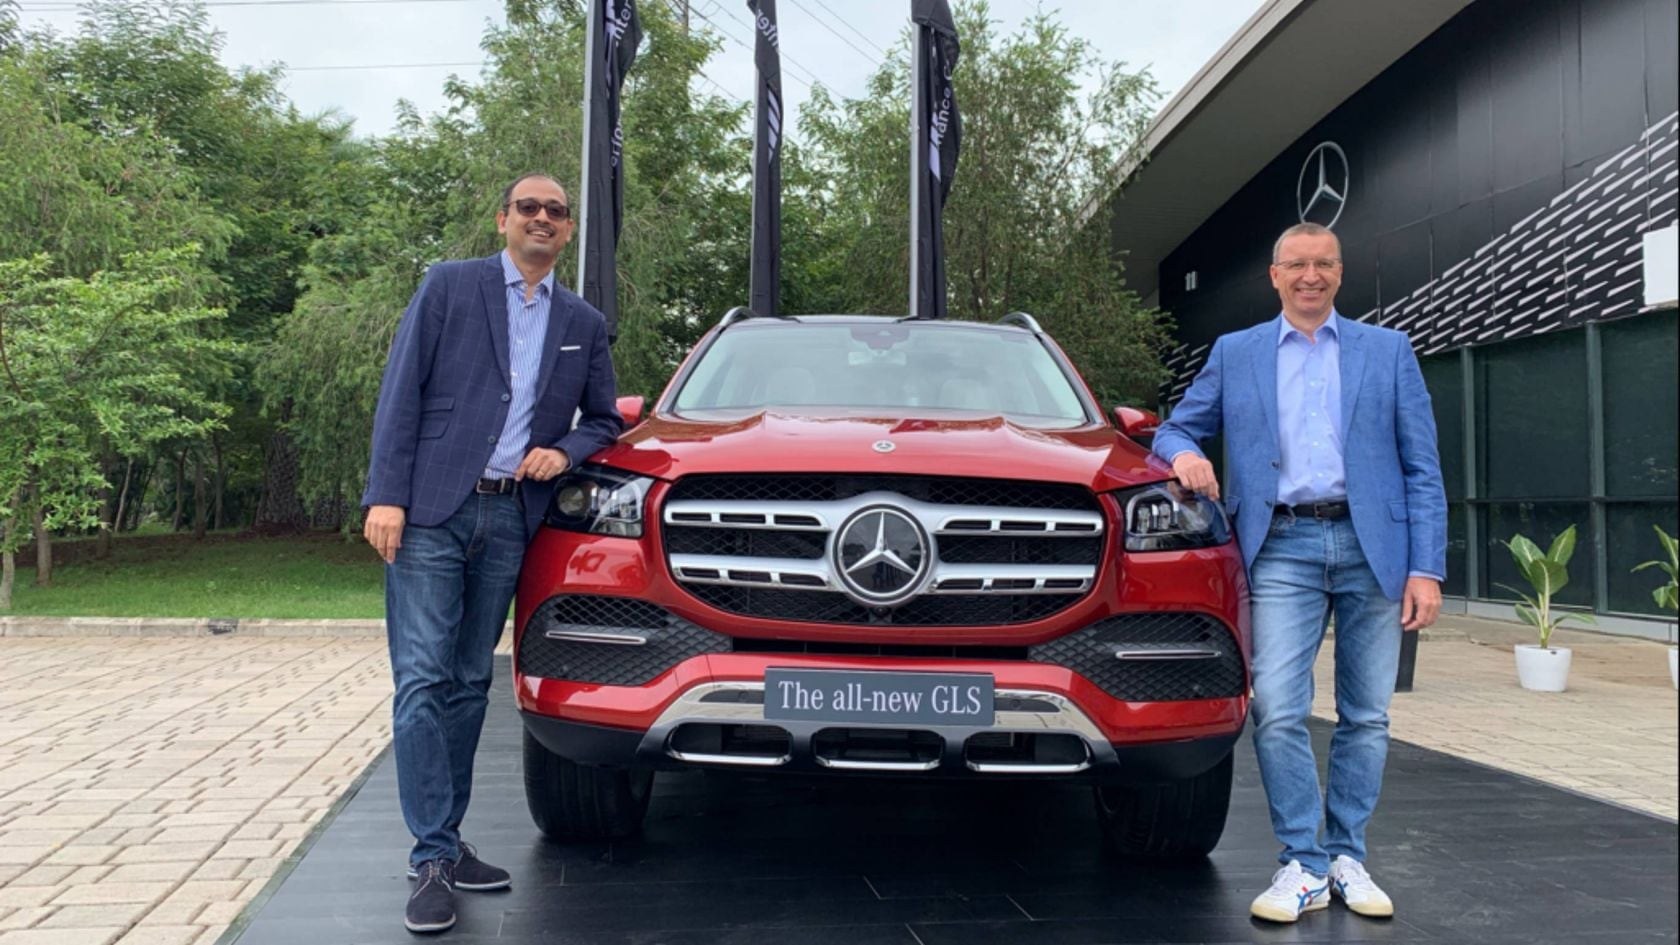 Mercedes Benz India Launches Its Largest Most Luxurious Suv The New Gls The S Class